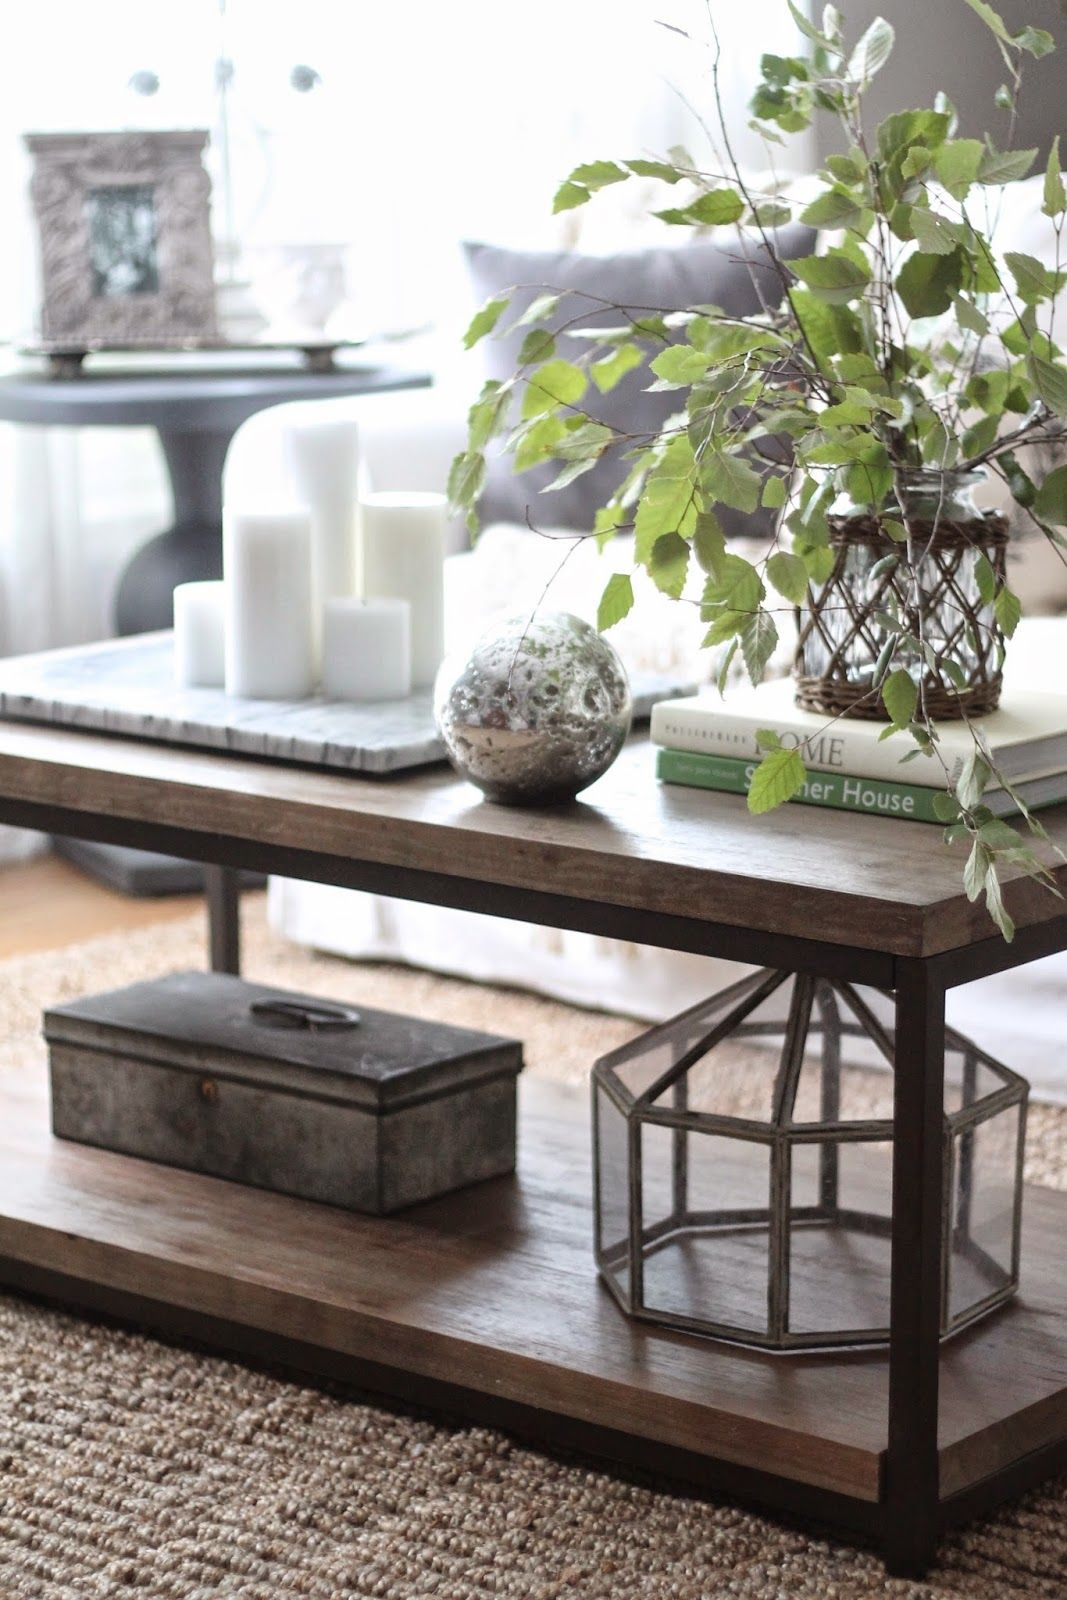 best coffee tables ideas furniture table living room accent you searching for something cooperate with this then the mirrored also fantastic way get done ceiling lamp patio and